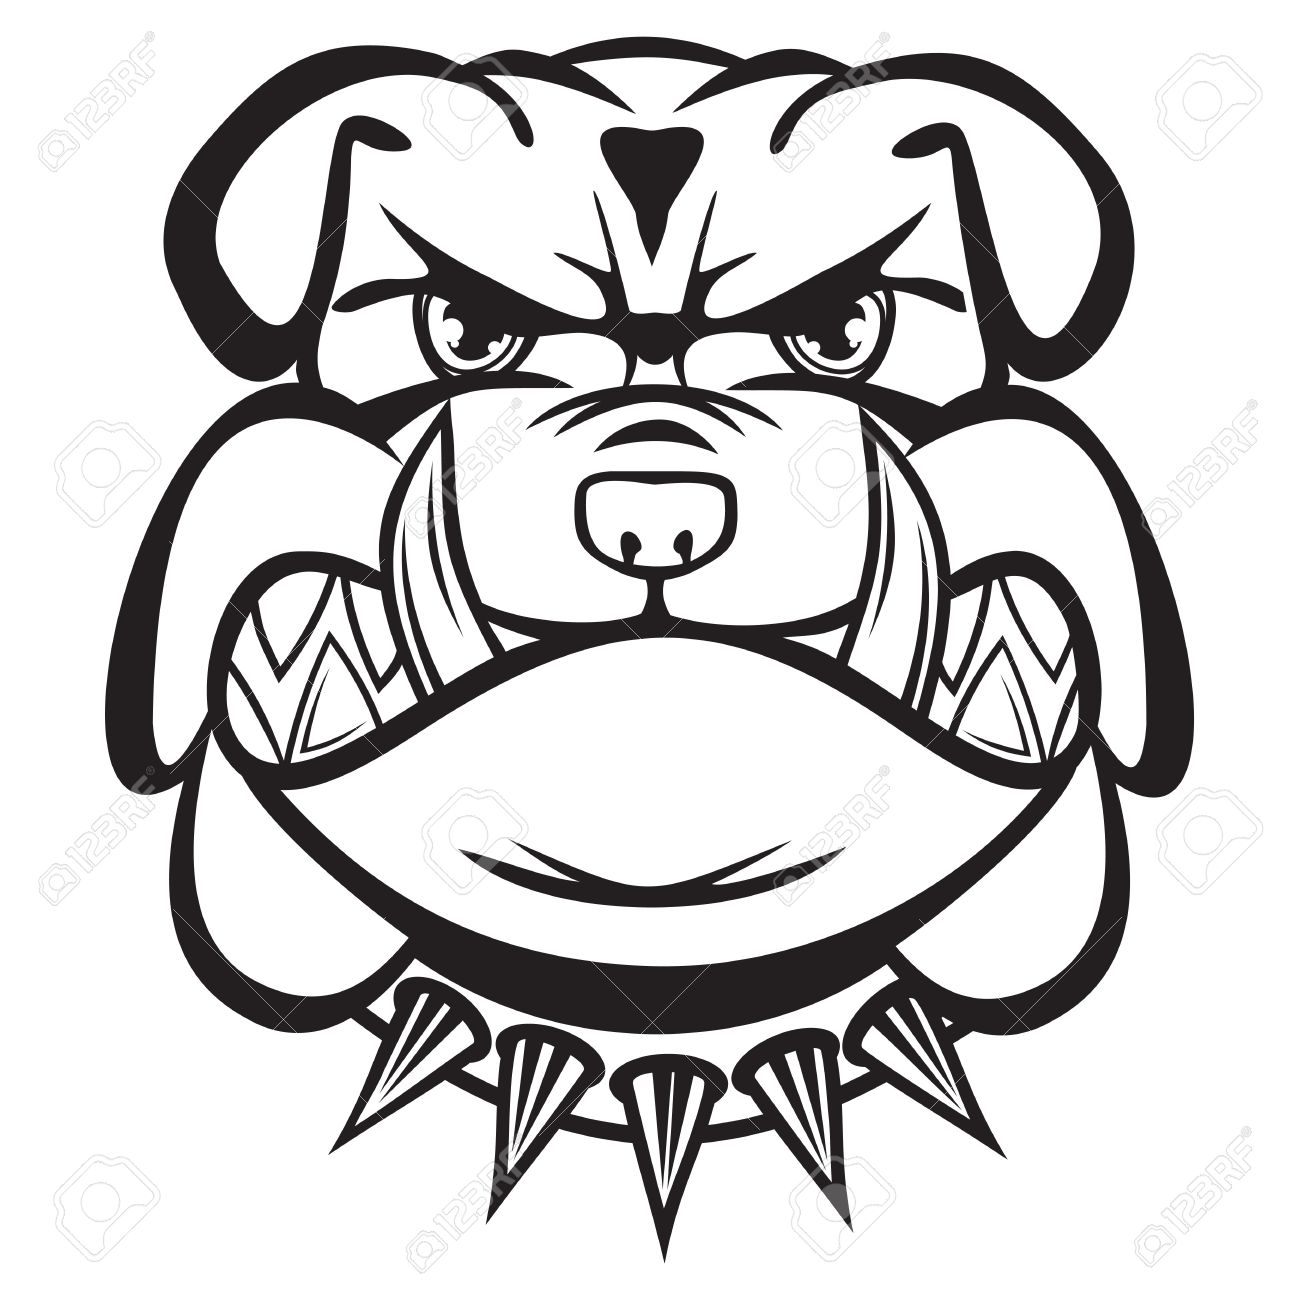 1299x1300 Angry Bulldog Head Black And White Royalty Free Cliparts, Vectors